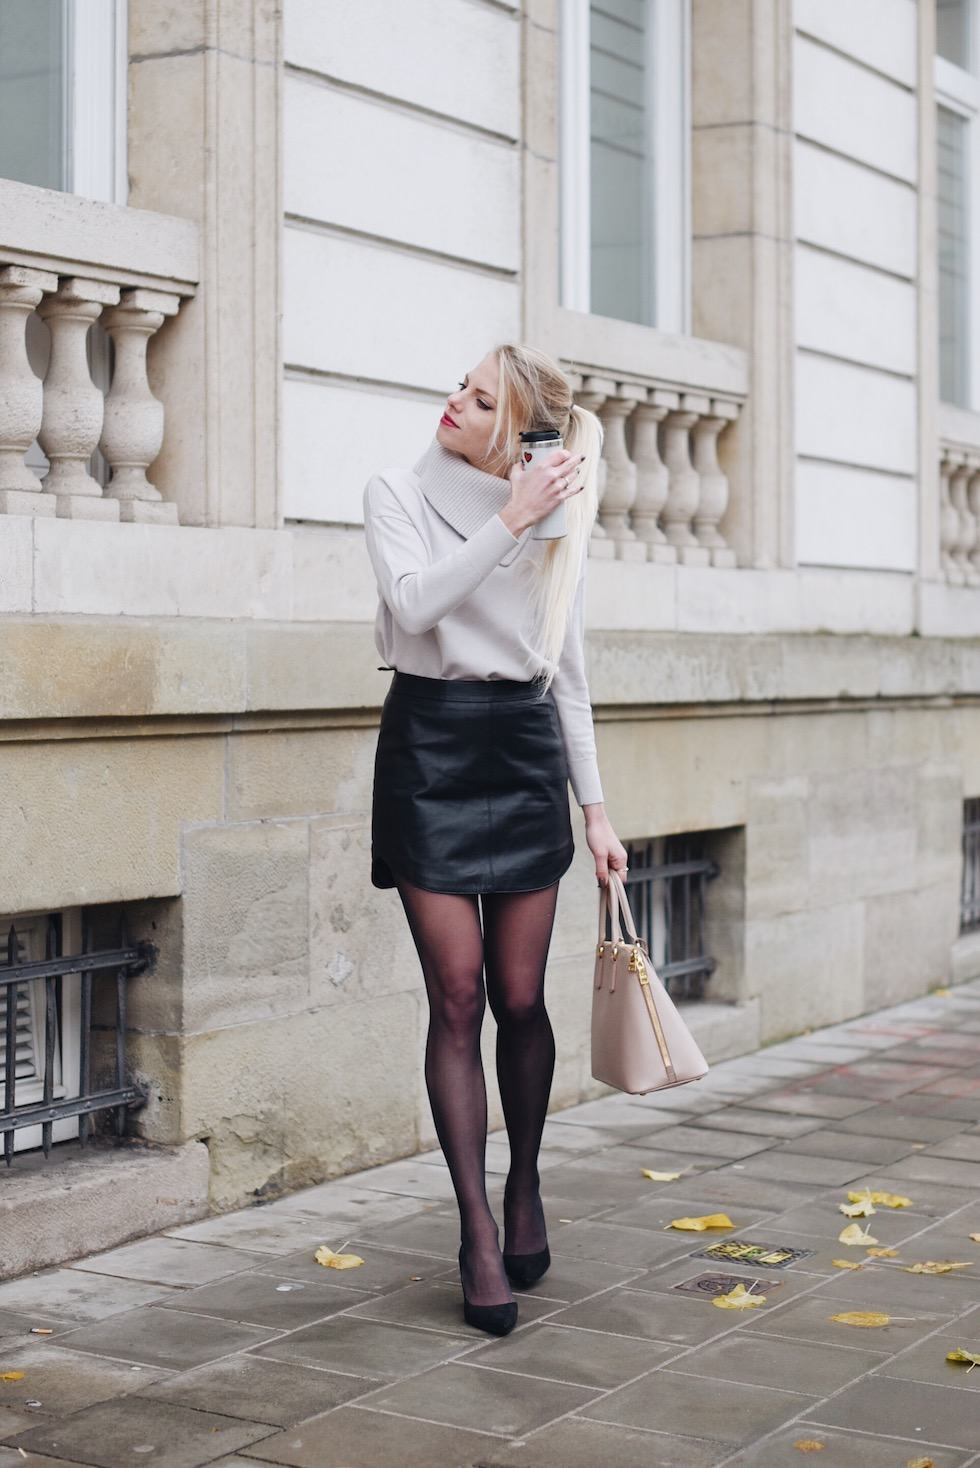 work-wear-for-winter-fashion-blogger-luxembourg-style-inspiration-model-luxembourg.jpg